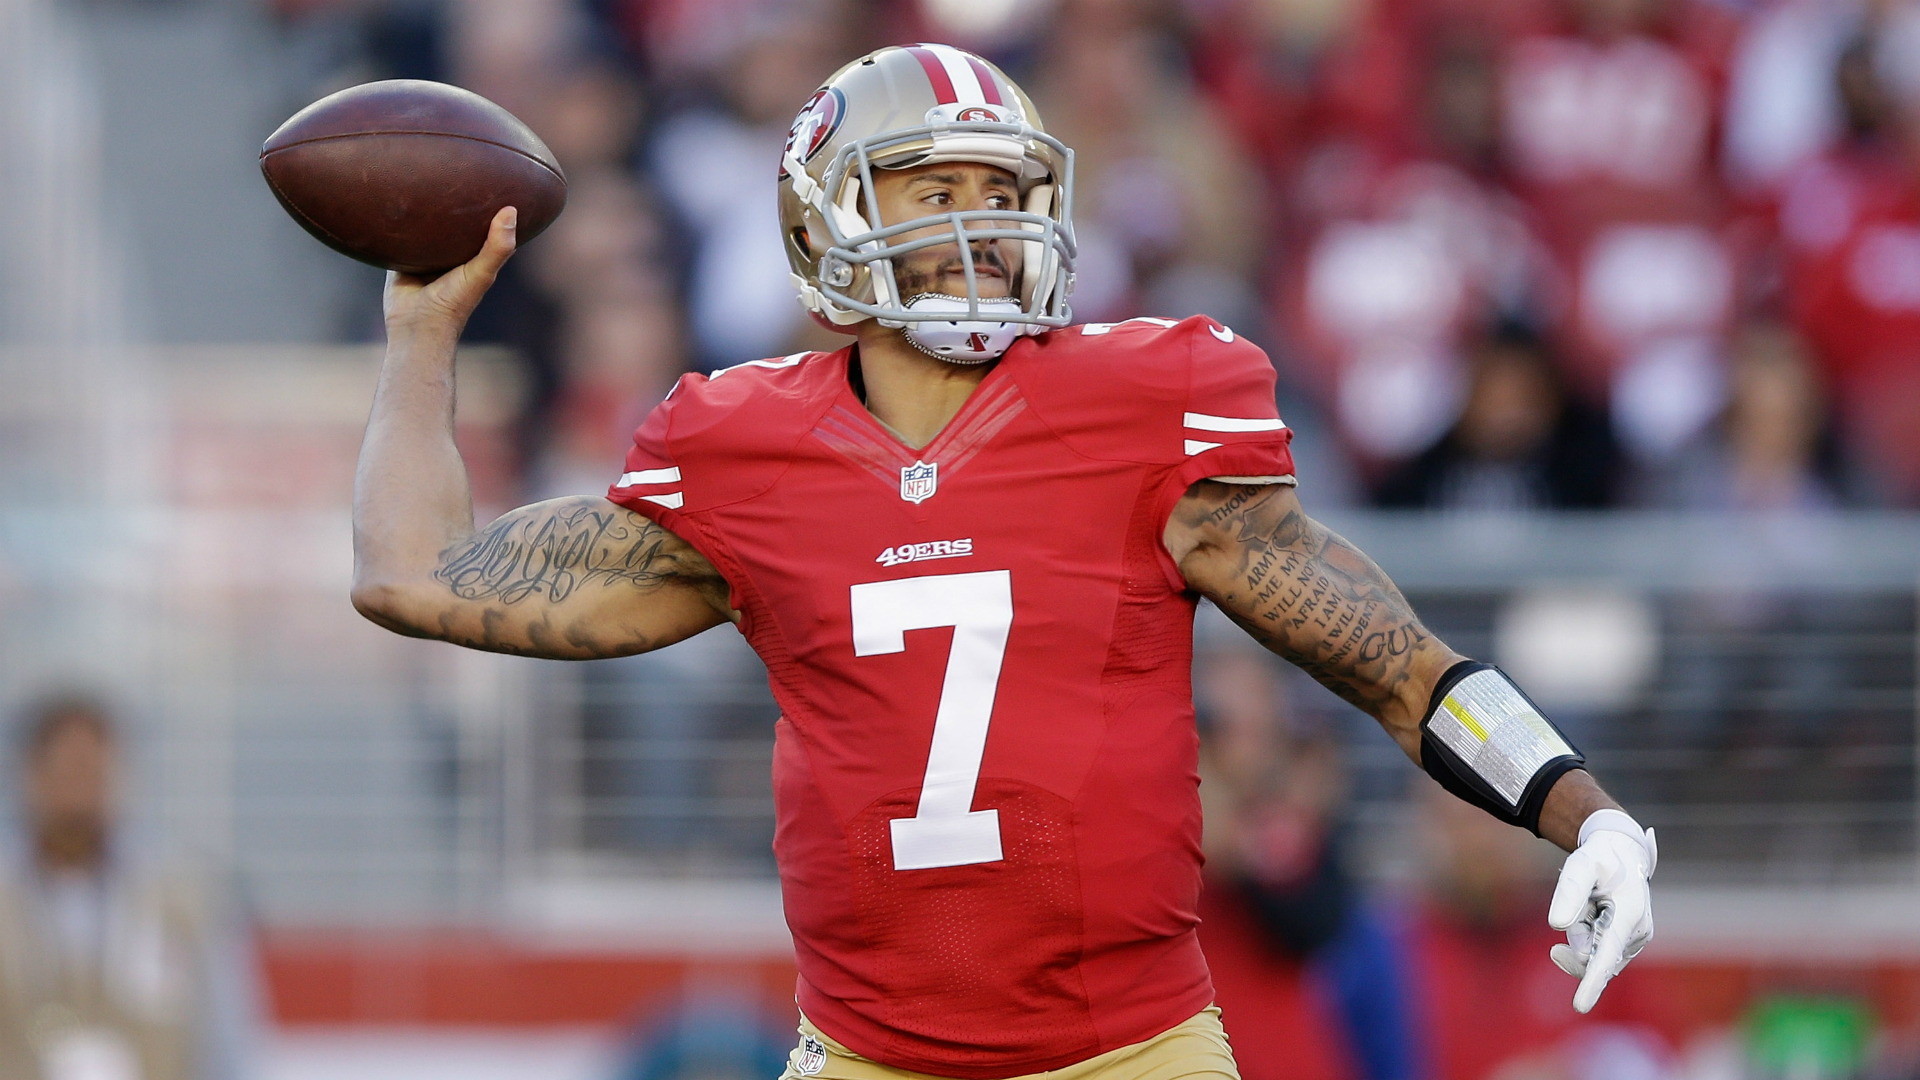 kaepernick-colin-usnews-getty-ftr